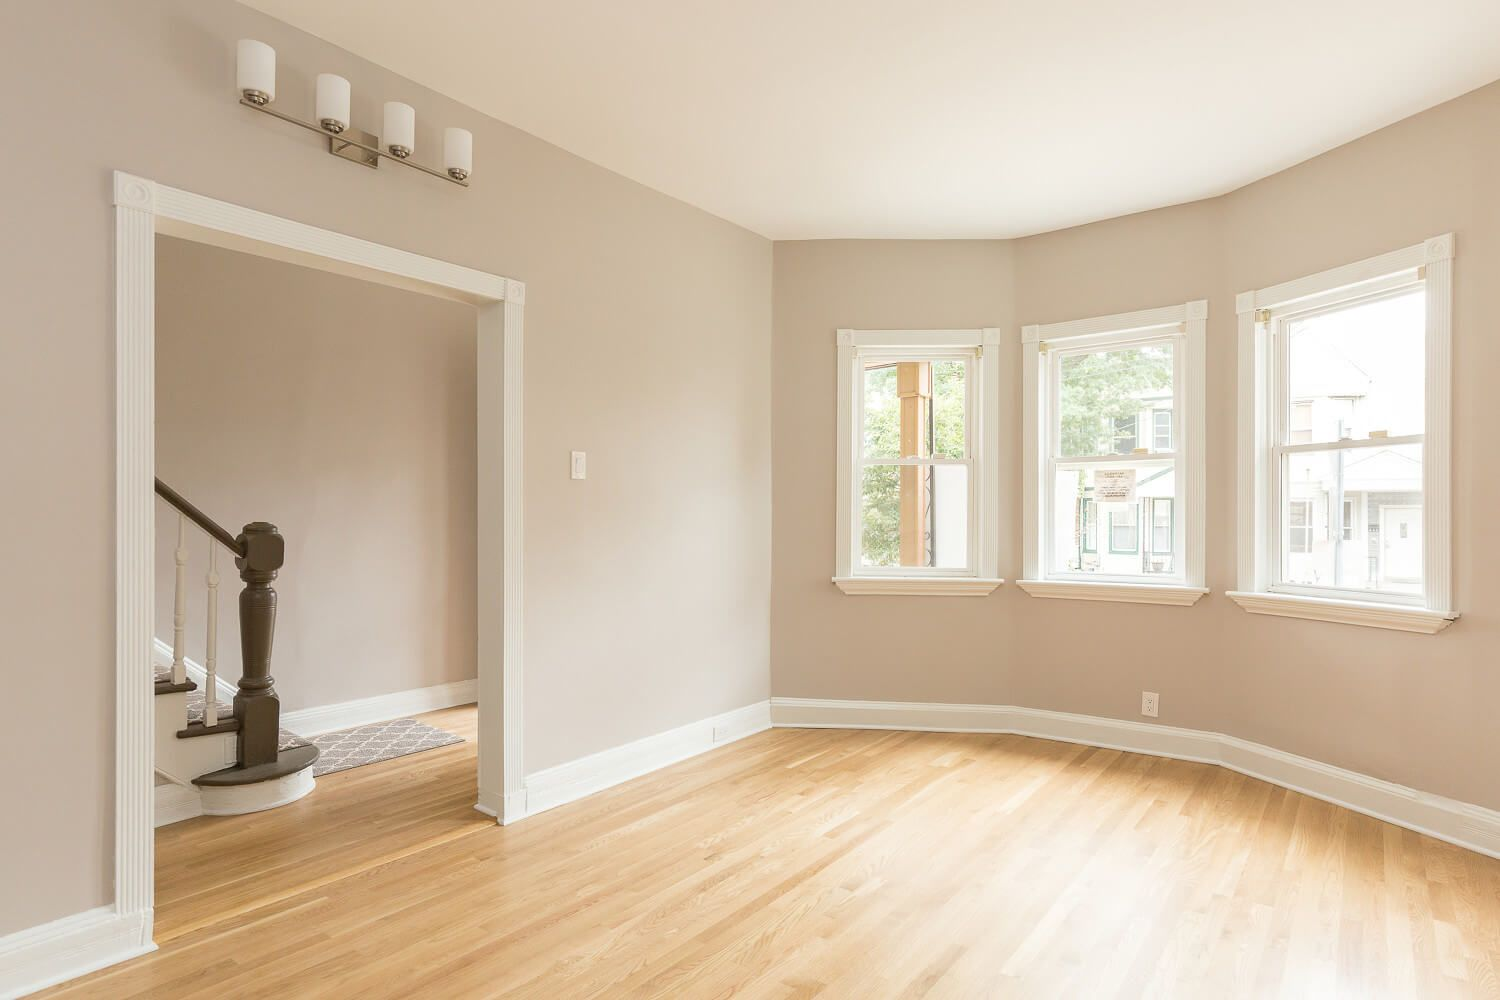 jersey city heights. post-fire townhouse renovation. interior design